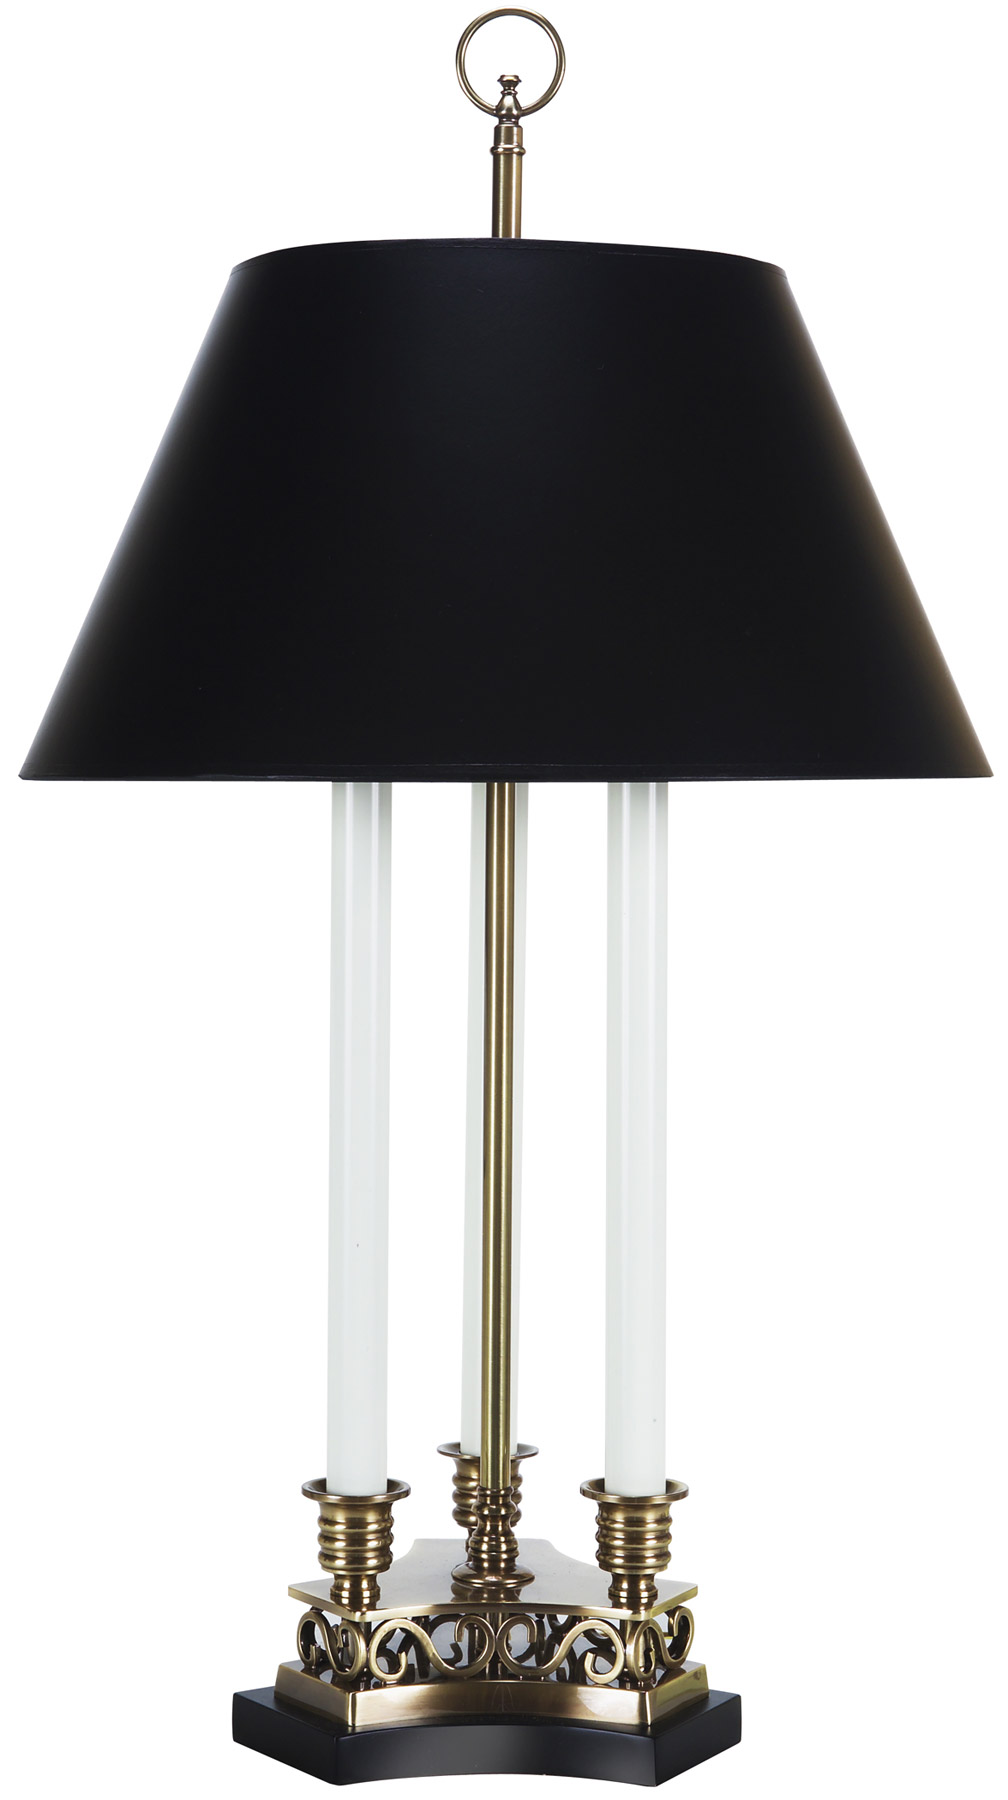 Frederick Cooper 65046 Brass Triple Candlestick Table Lamp